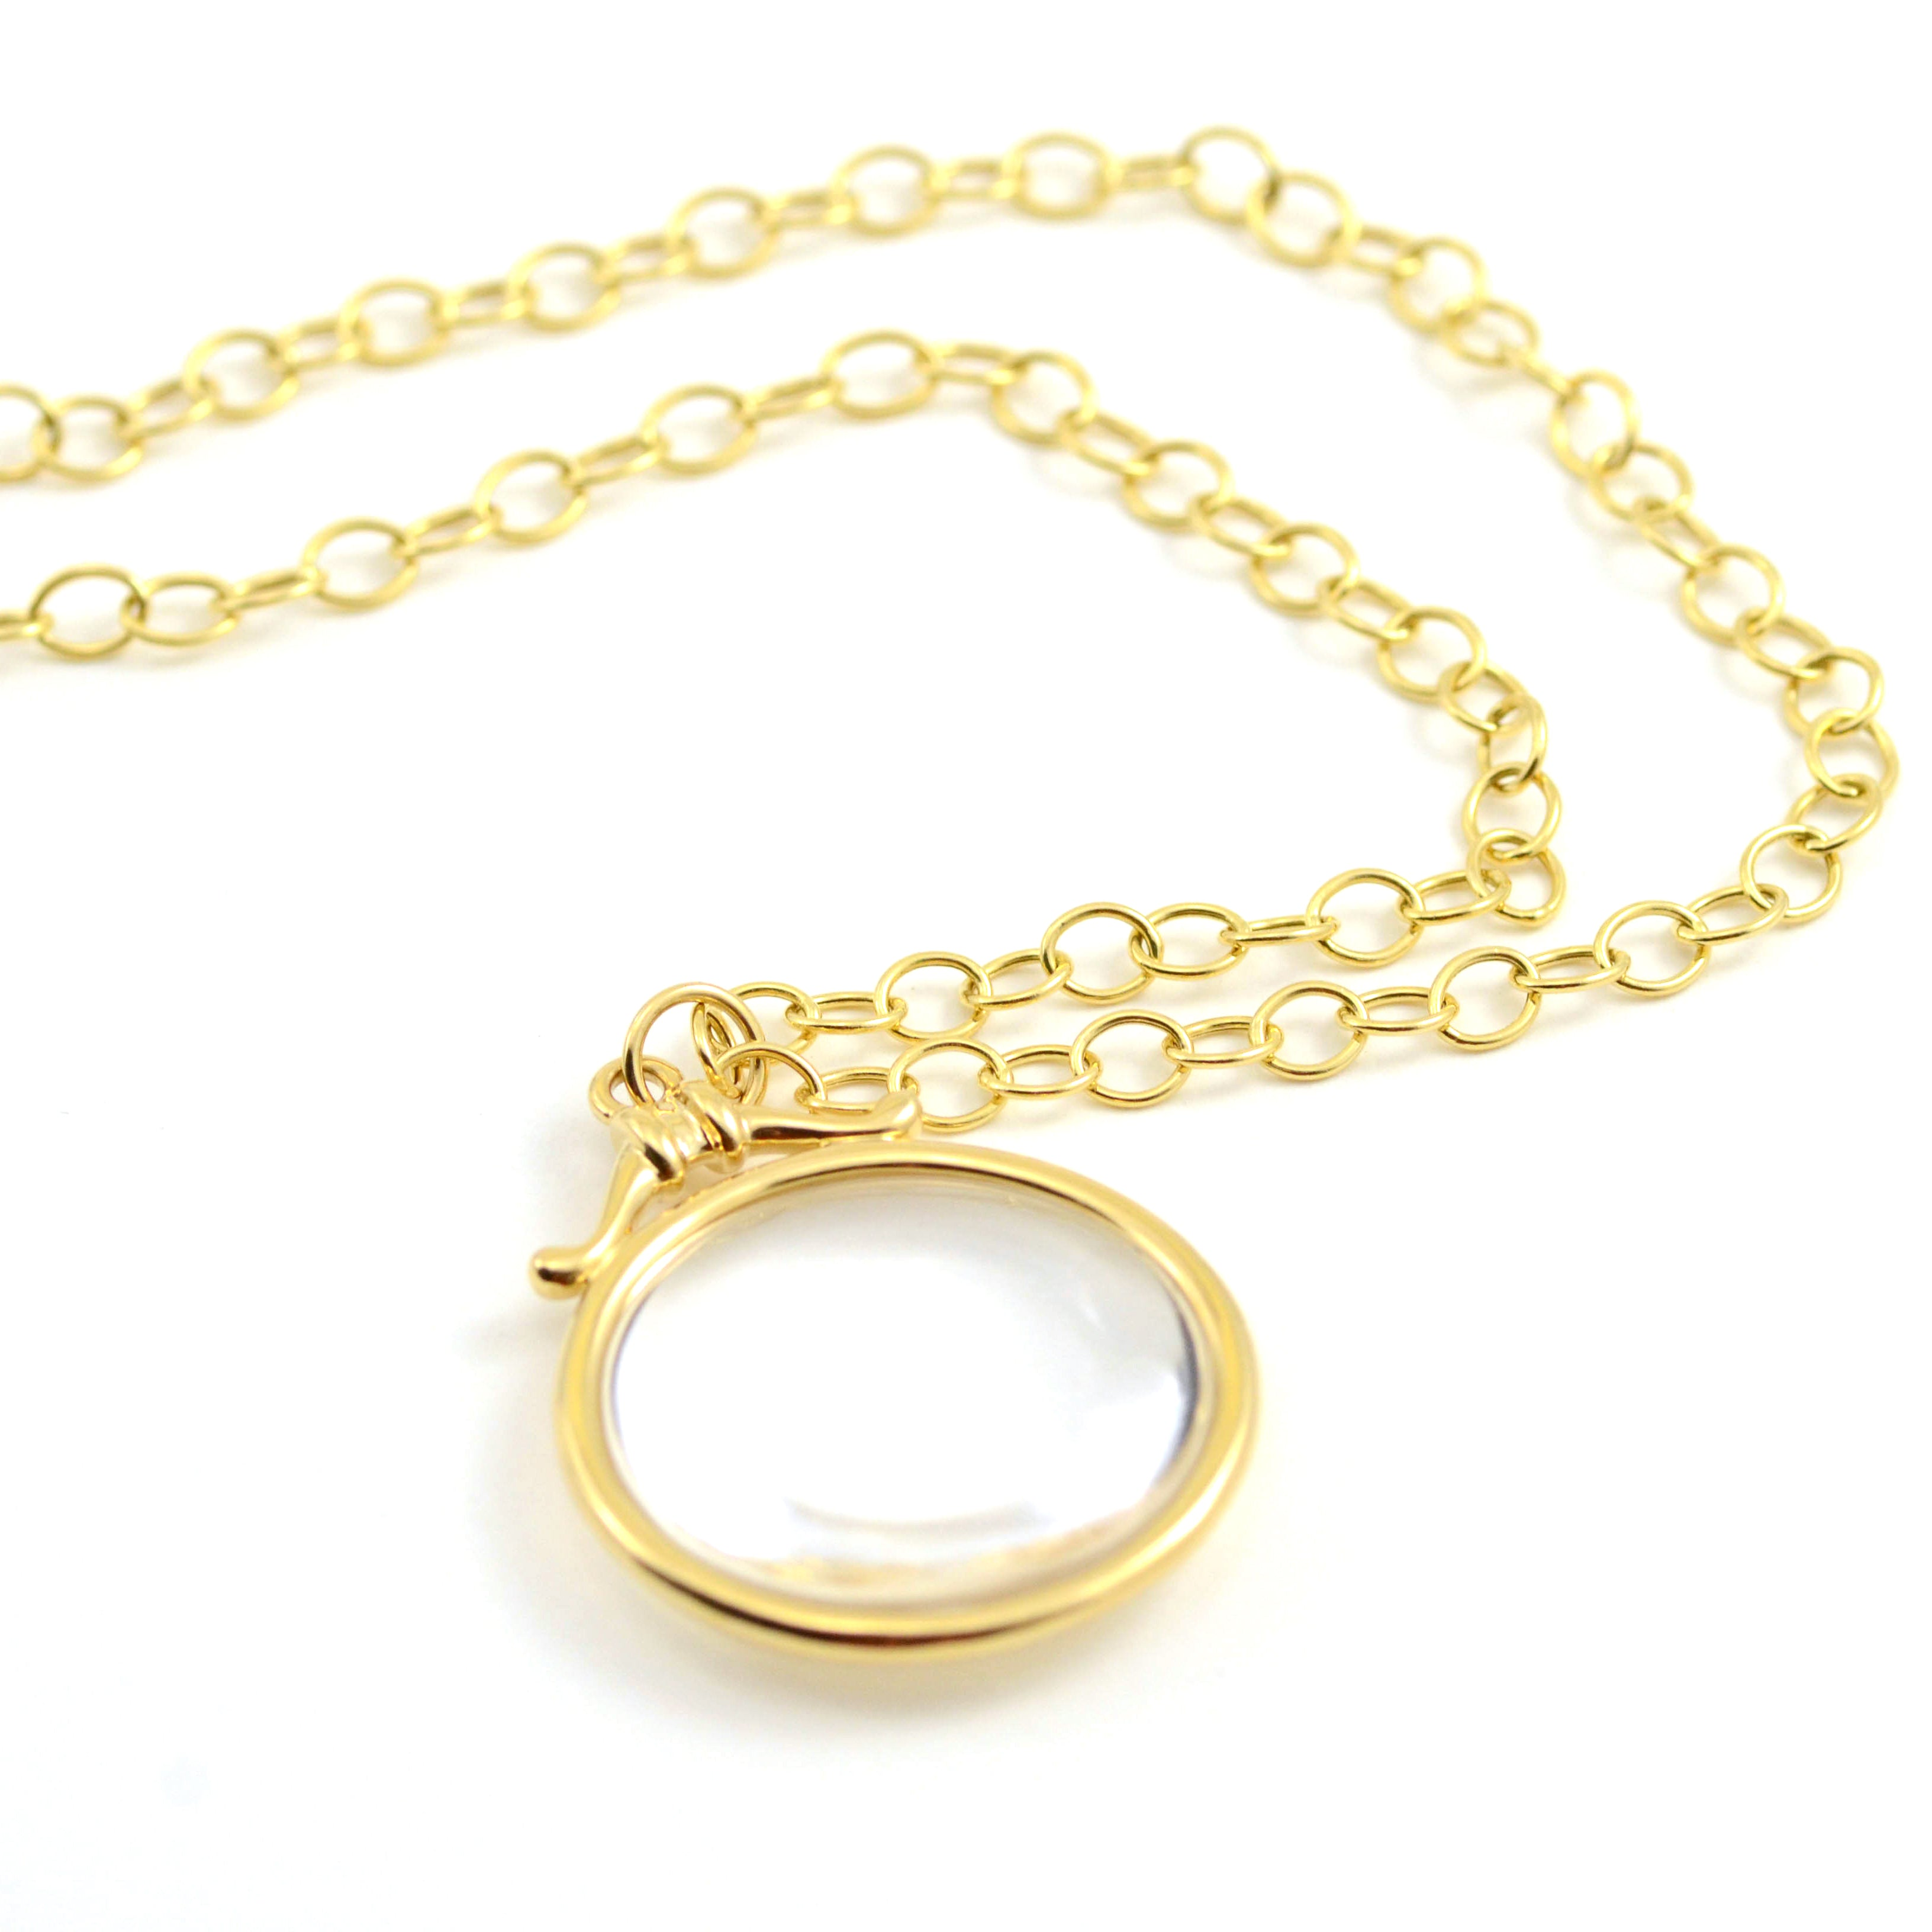 "Syna Necklace. Stunning Rock Crystal Chakra pendant is set in 18kt yellow gold. Shown with 18kt yellow gold oval link chain with lobster clasp. Simply stunning.   30mm pendant is 35 carats. Oval link chain is 30"". Necklace and Chain are available separately. Please inquire."